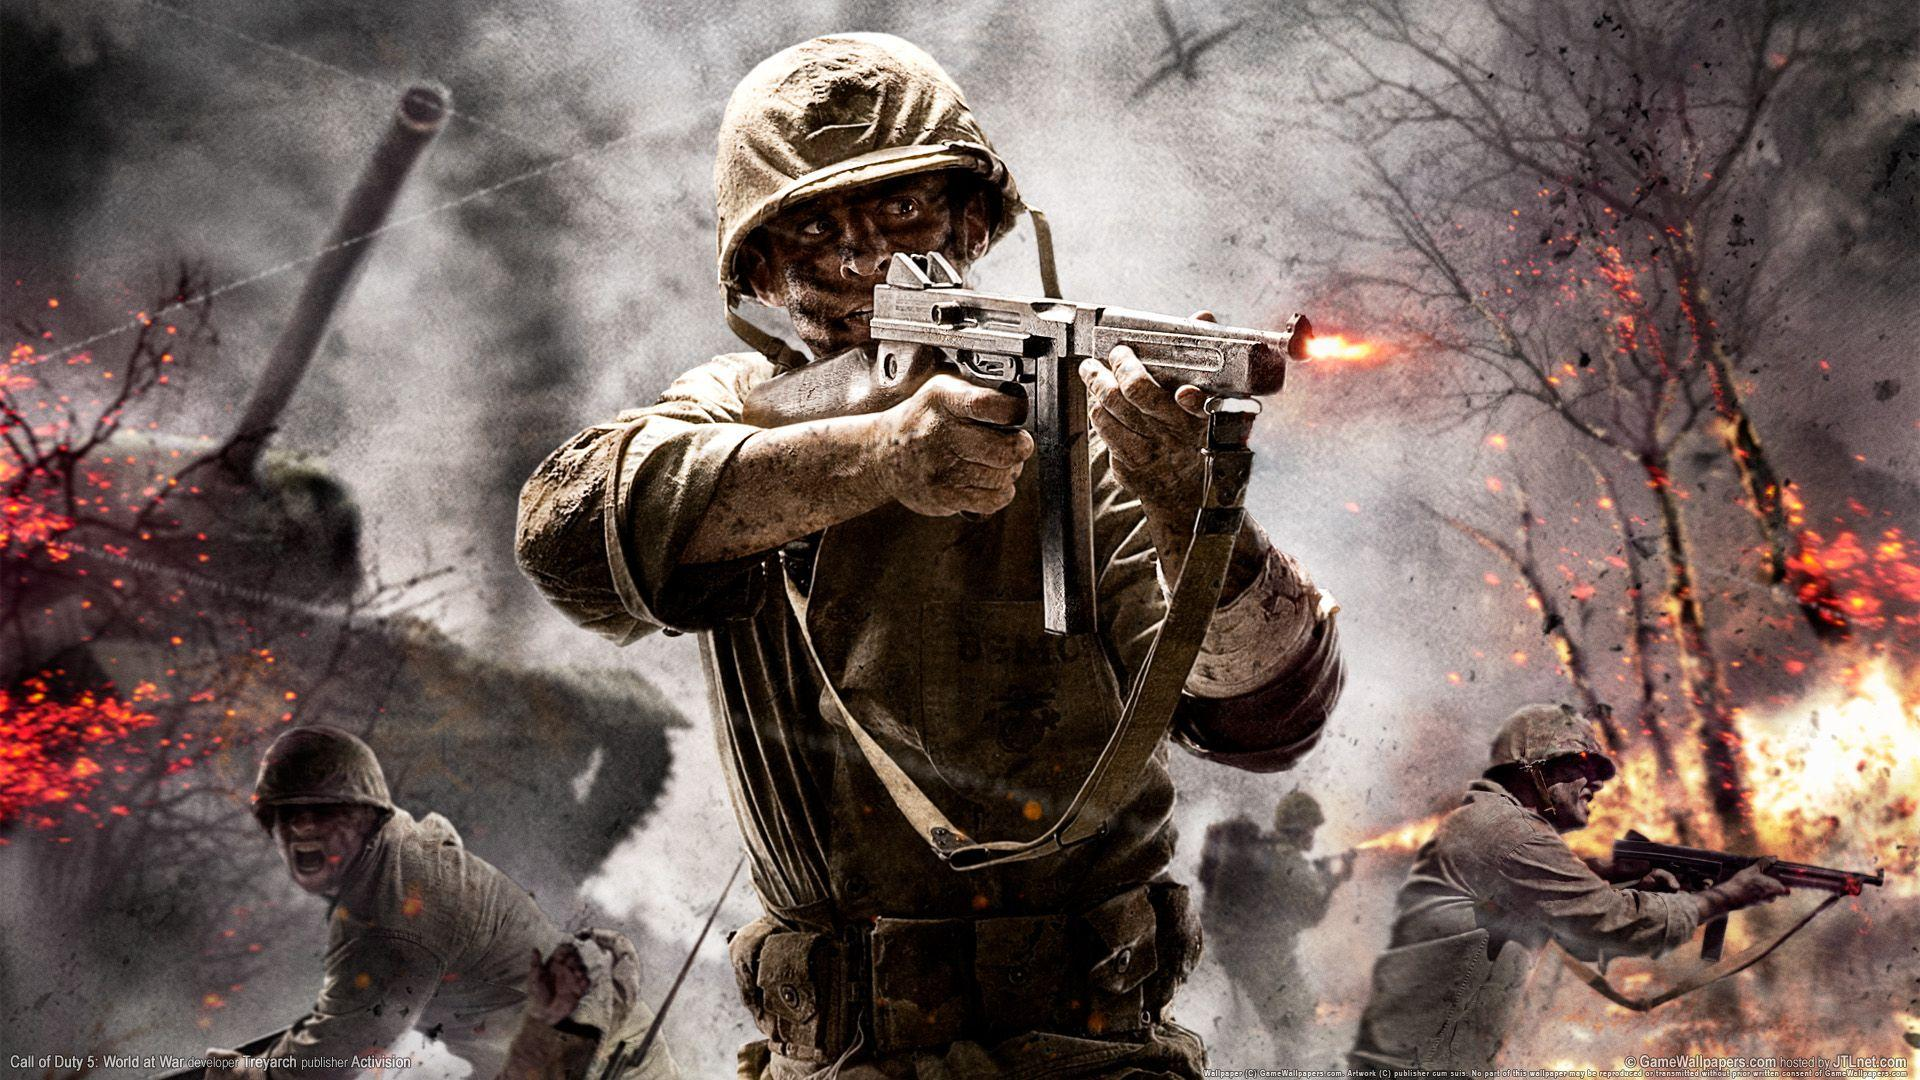 Call of Duty Game - http://www.0wallpapers.com/3170-call-of-duty ...